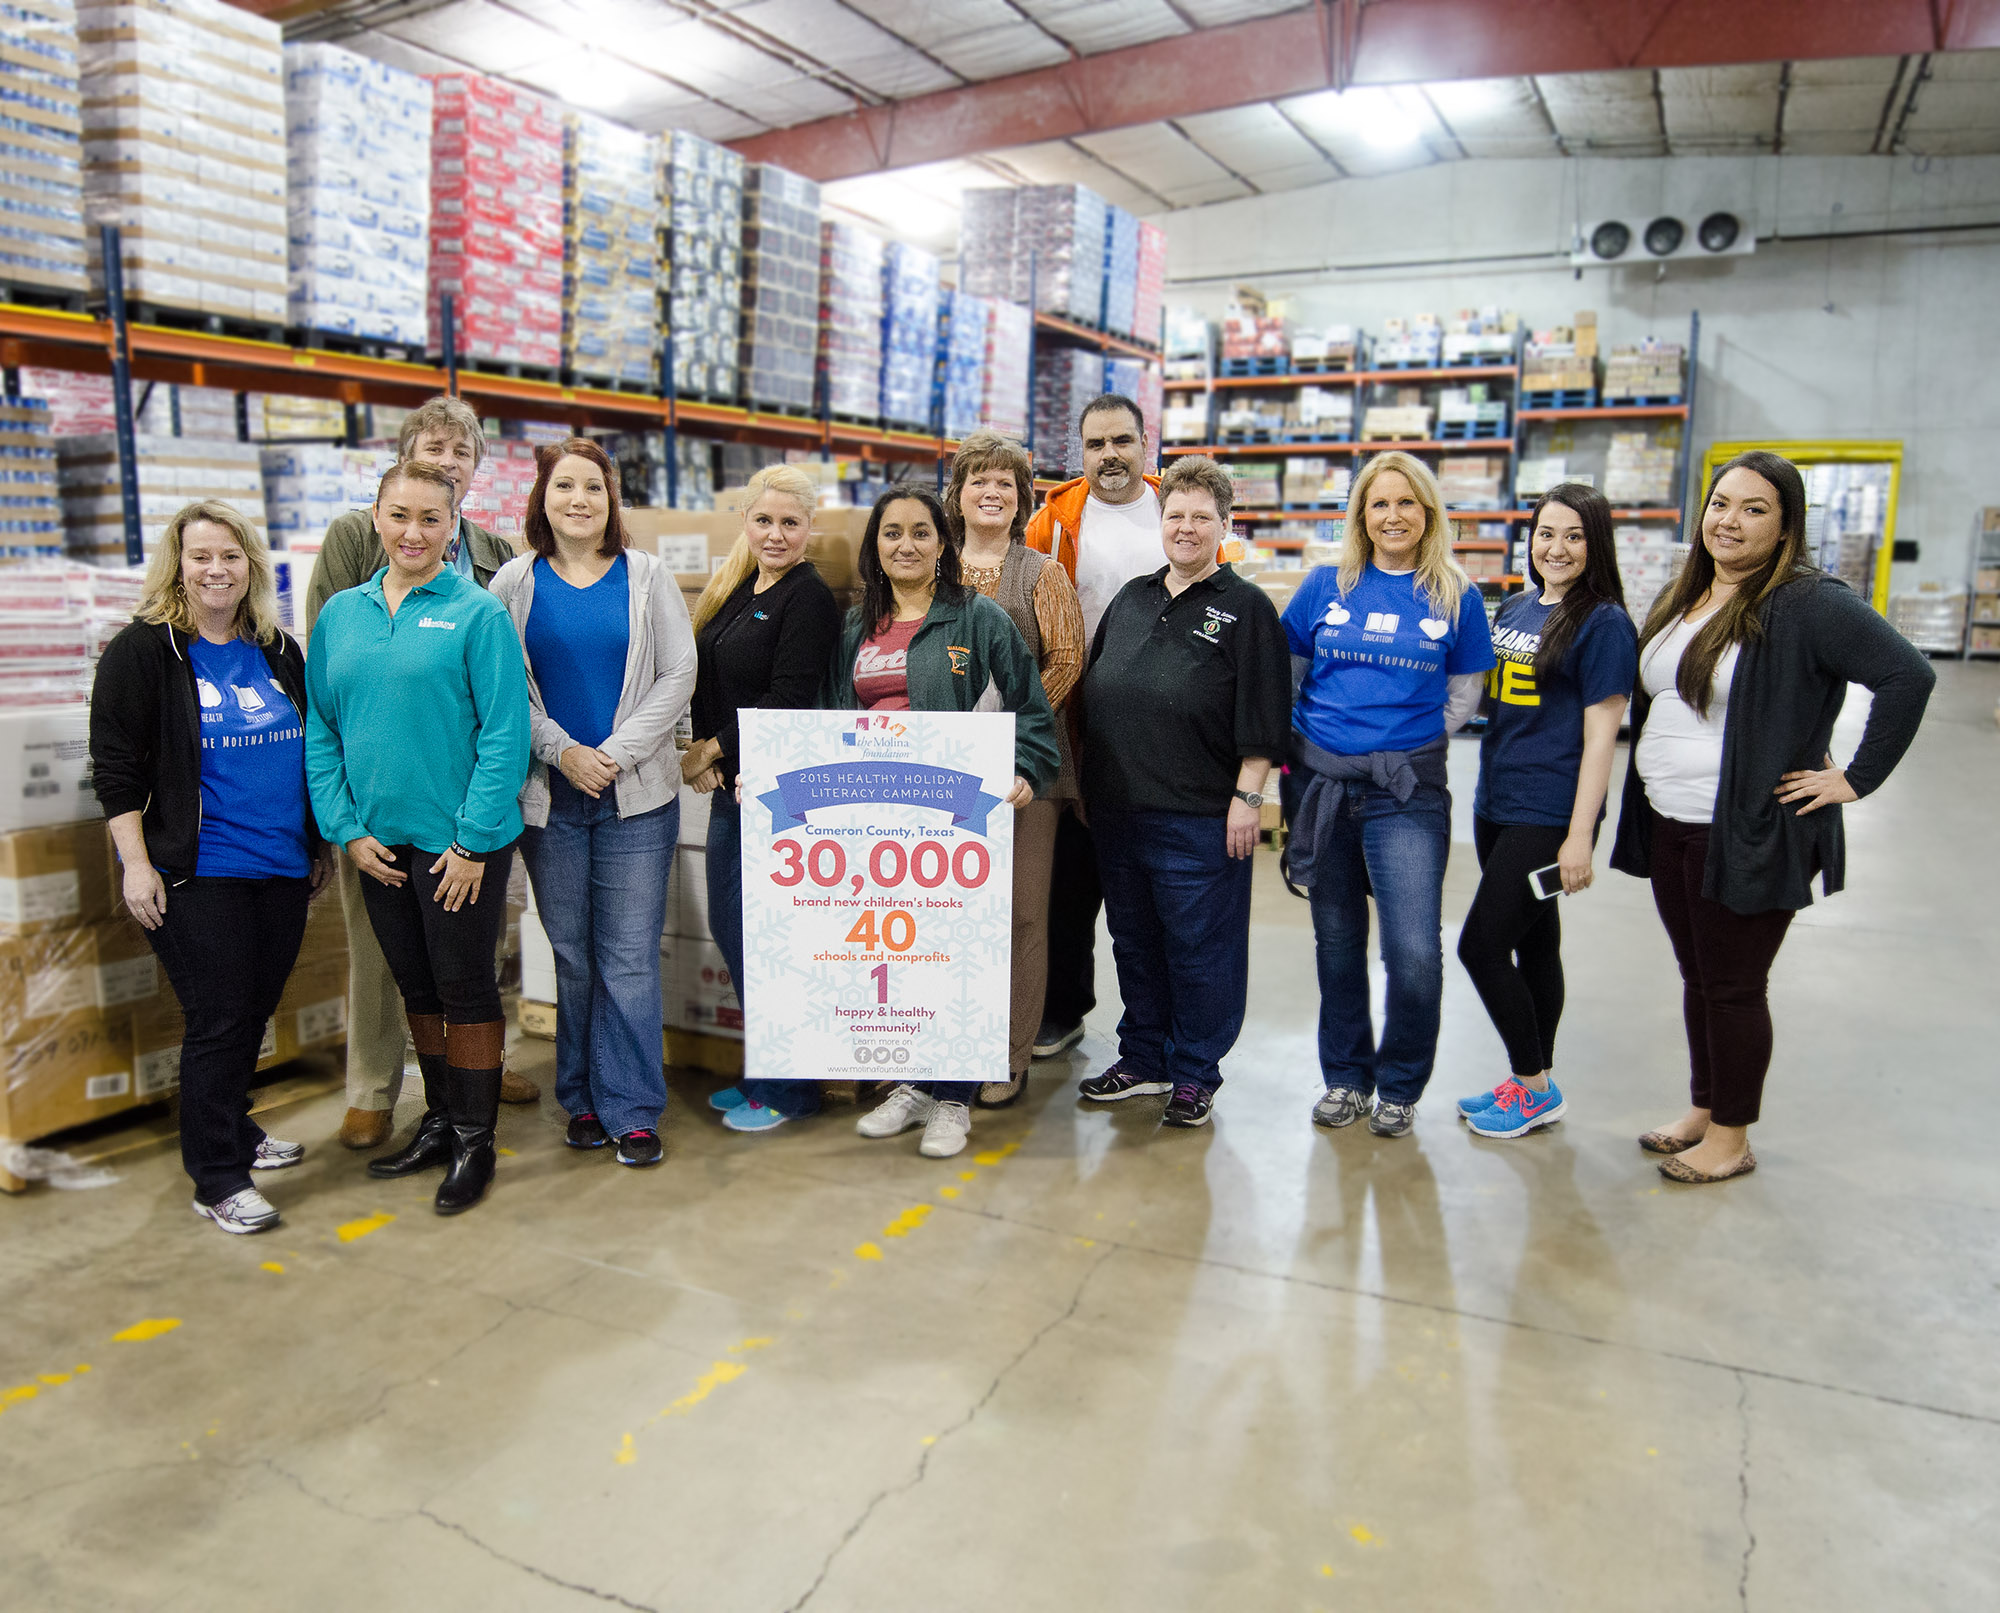 Literacy campaign distributes 35,000 books to HCISD and area schools